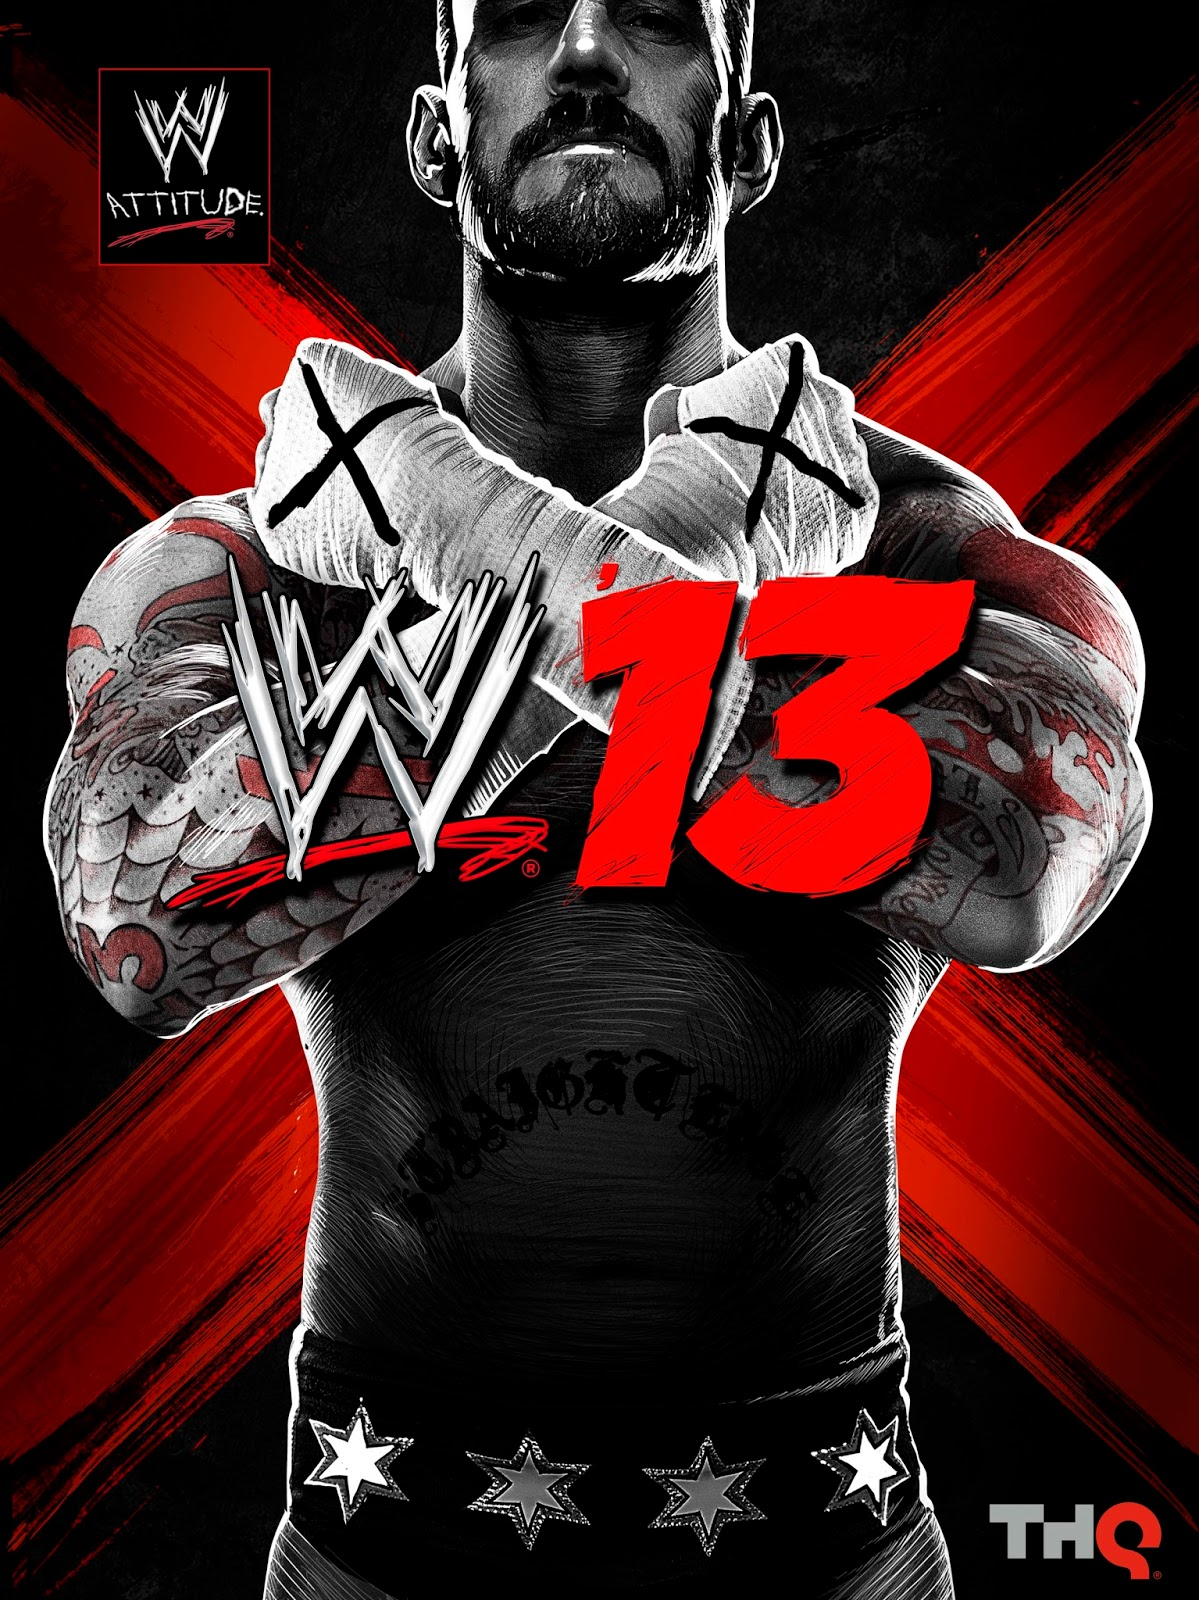 Wwe 13 Full Download Ps3 Game Fully Full Version Games